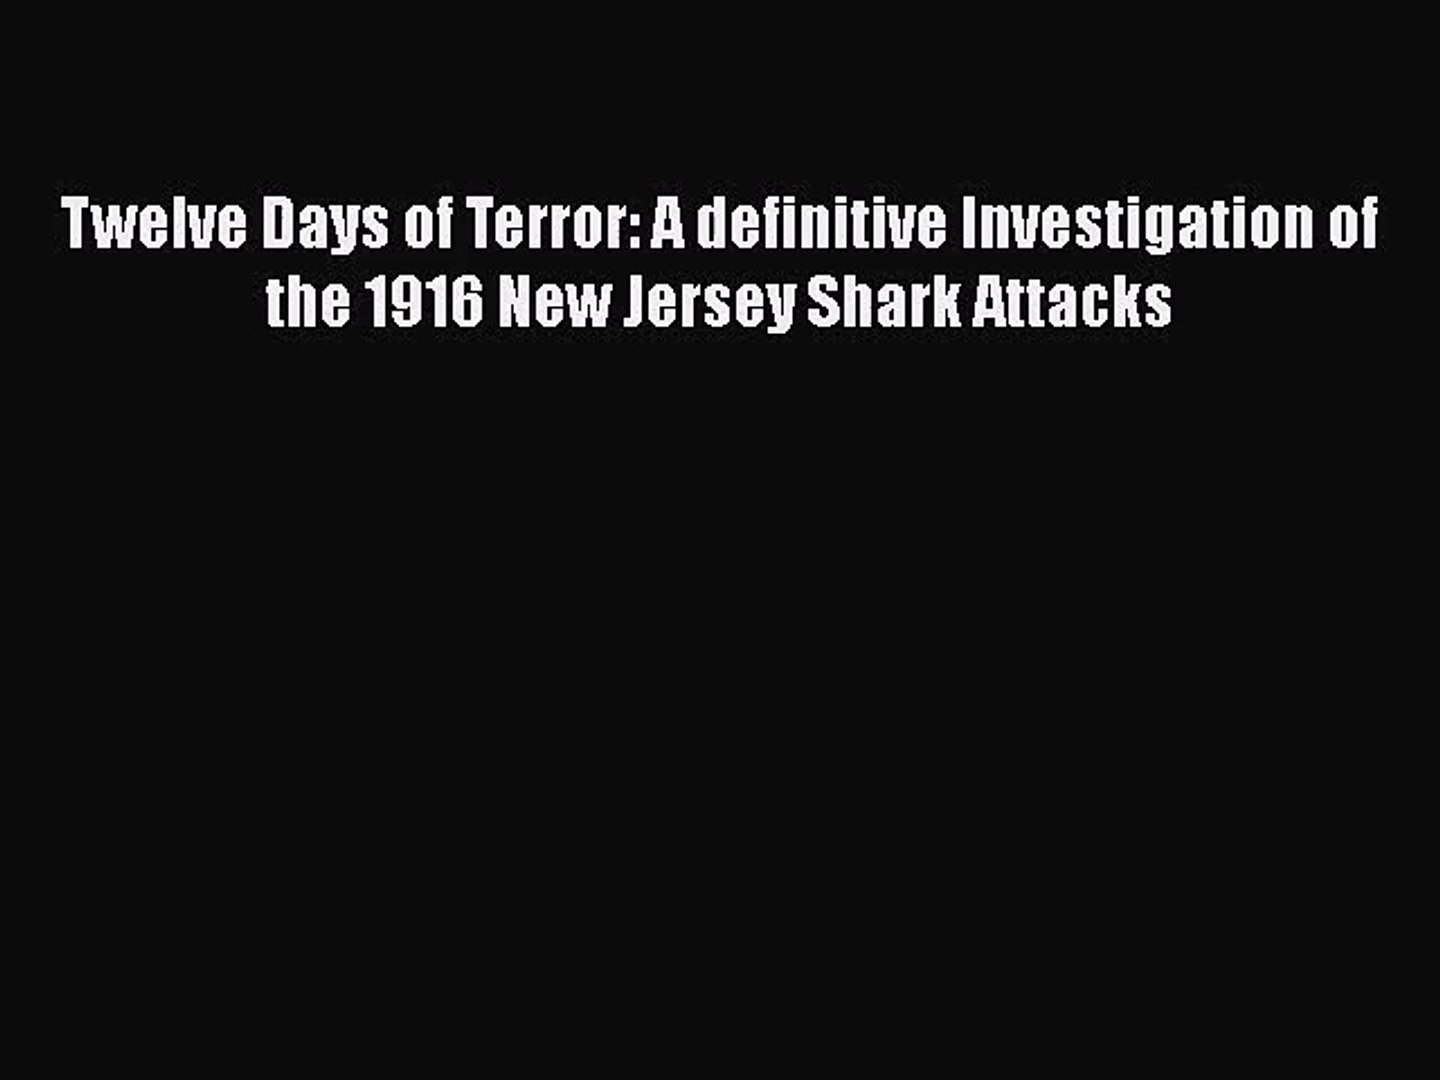 PDF Download Twelve Days of Terror: A definitive Investigation of the 1916 New Jersey Shark